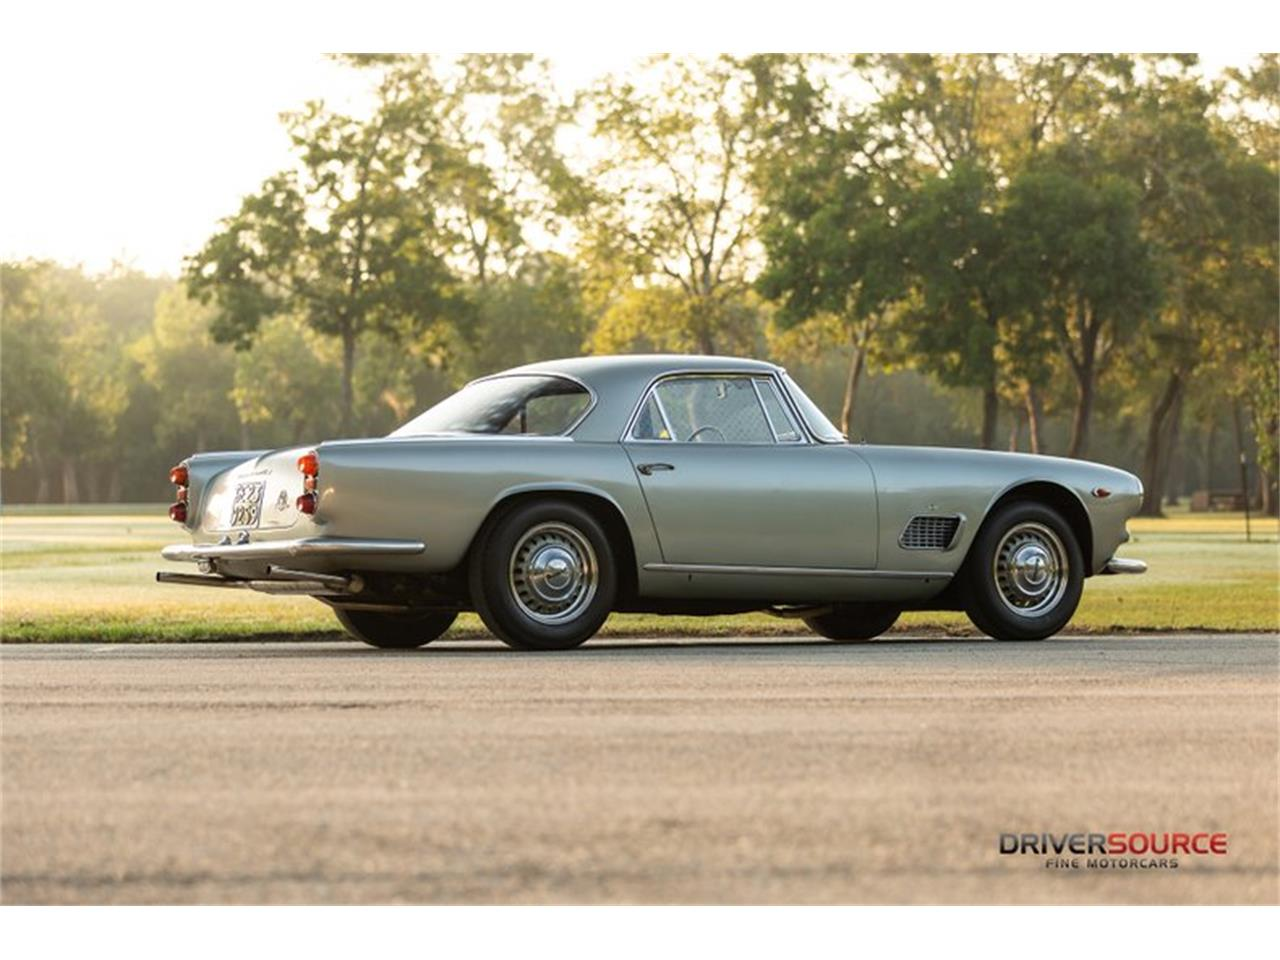 Large Picture of '62 Maserati 3500 located in Houston Texas Offered by Driversource - OCR7